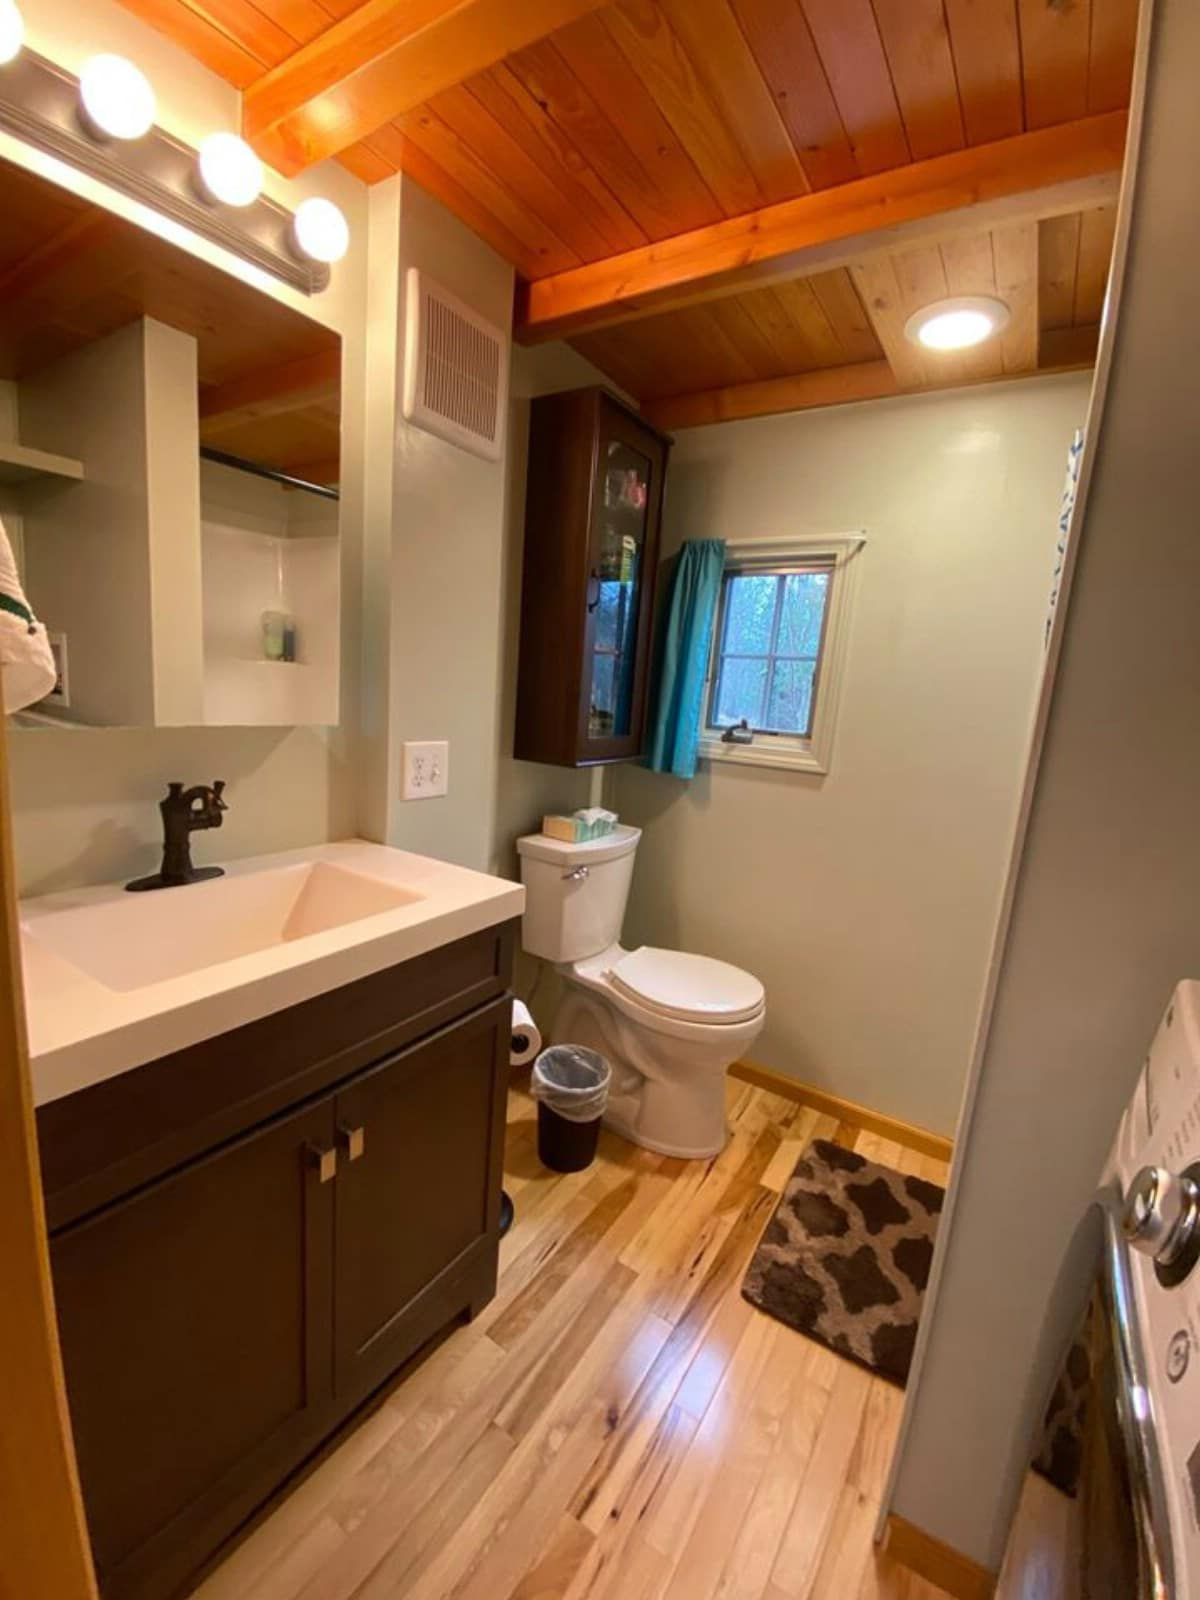 Sink and toilet of log cabin